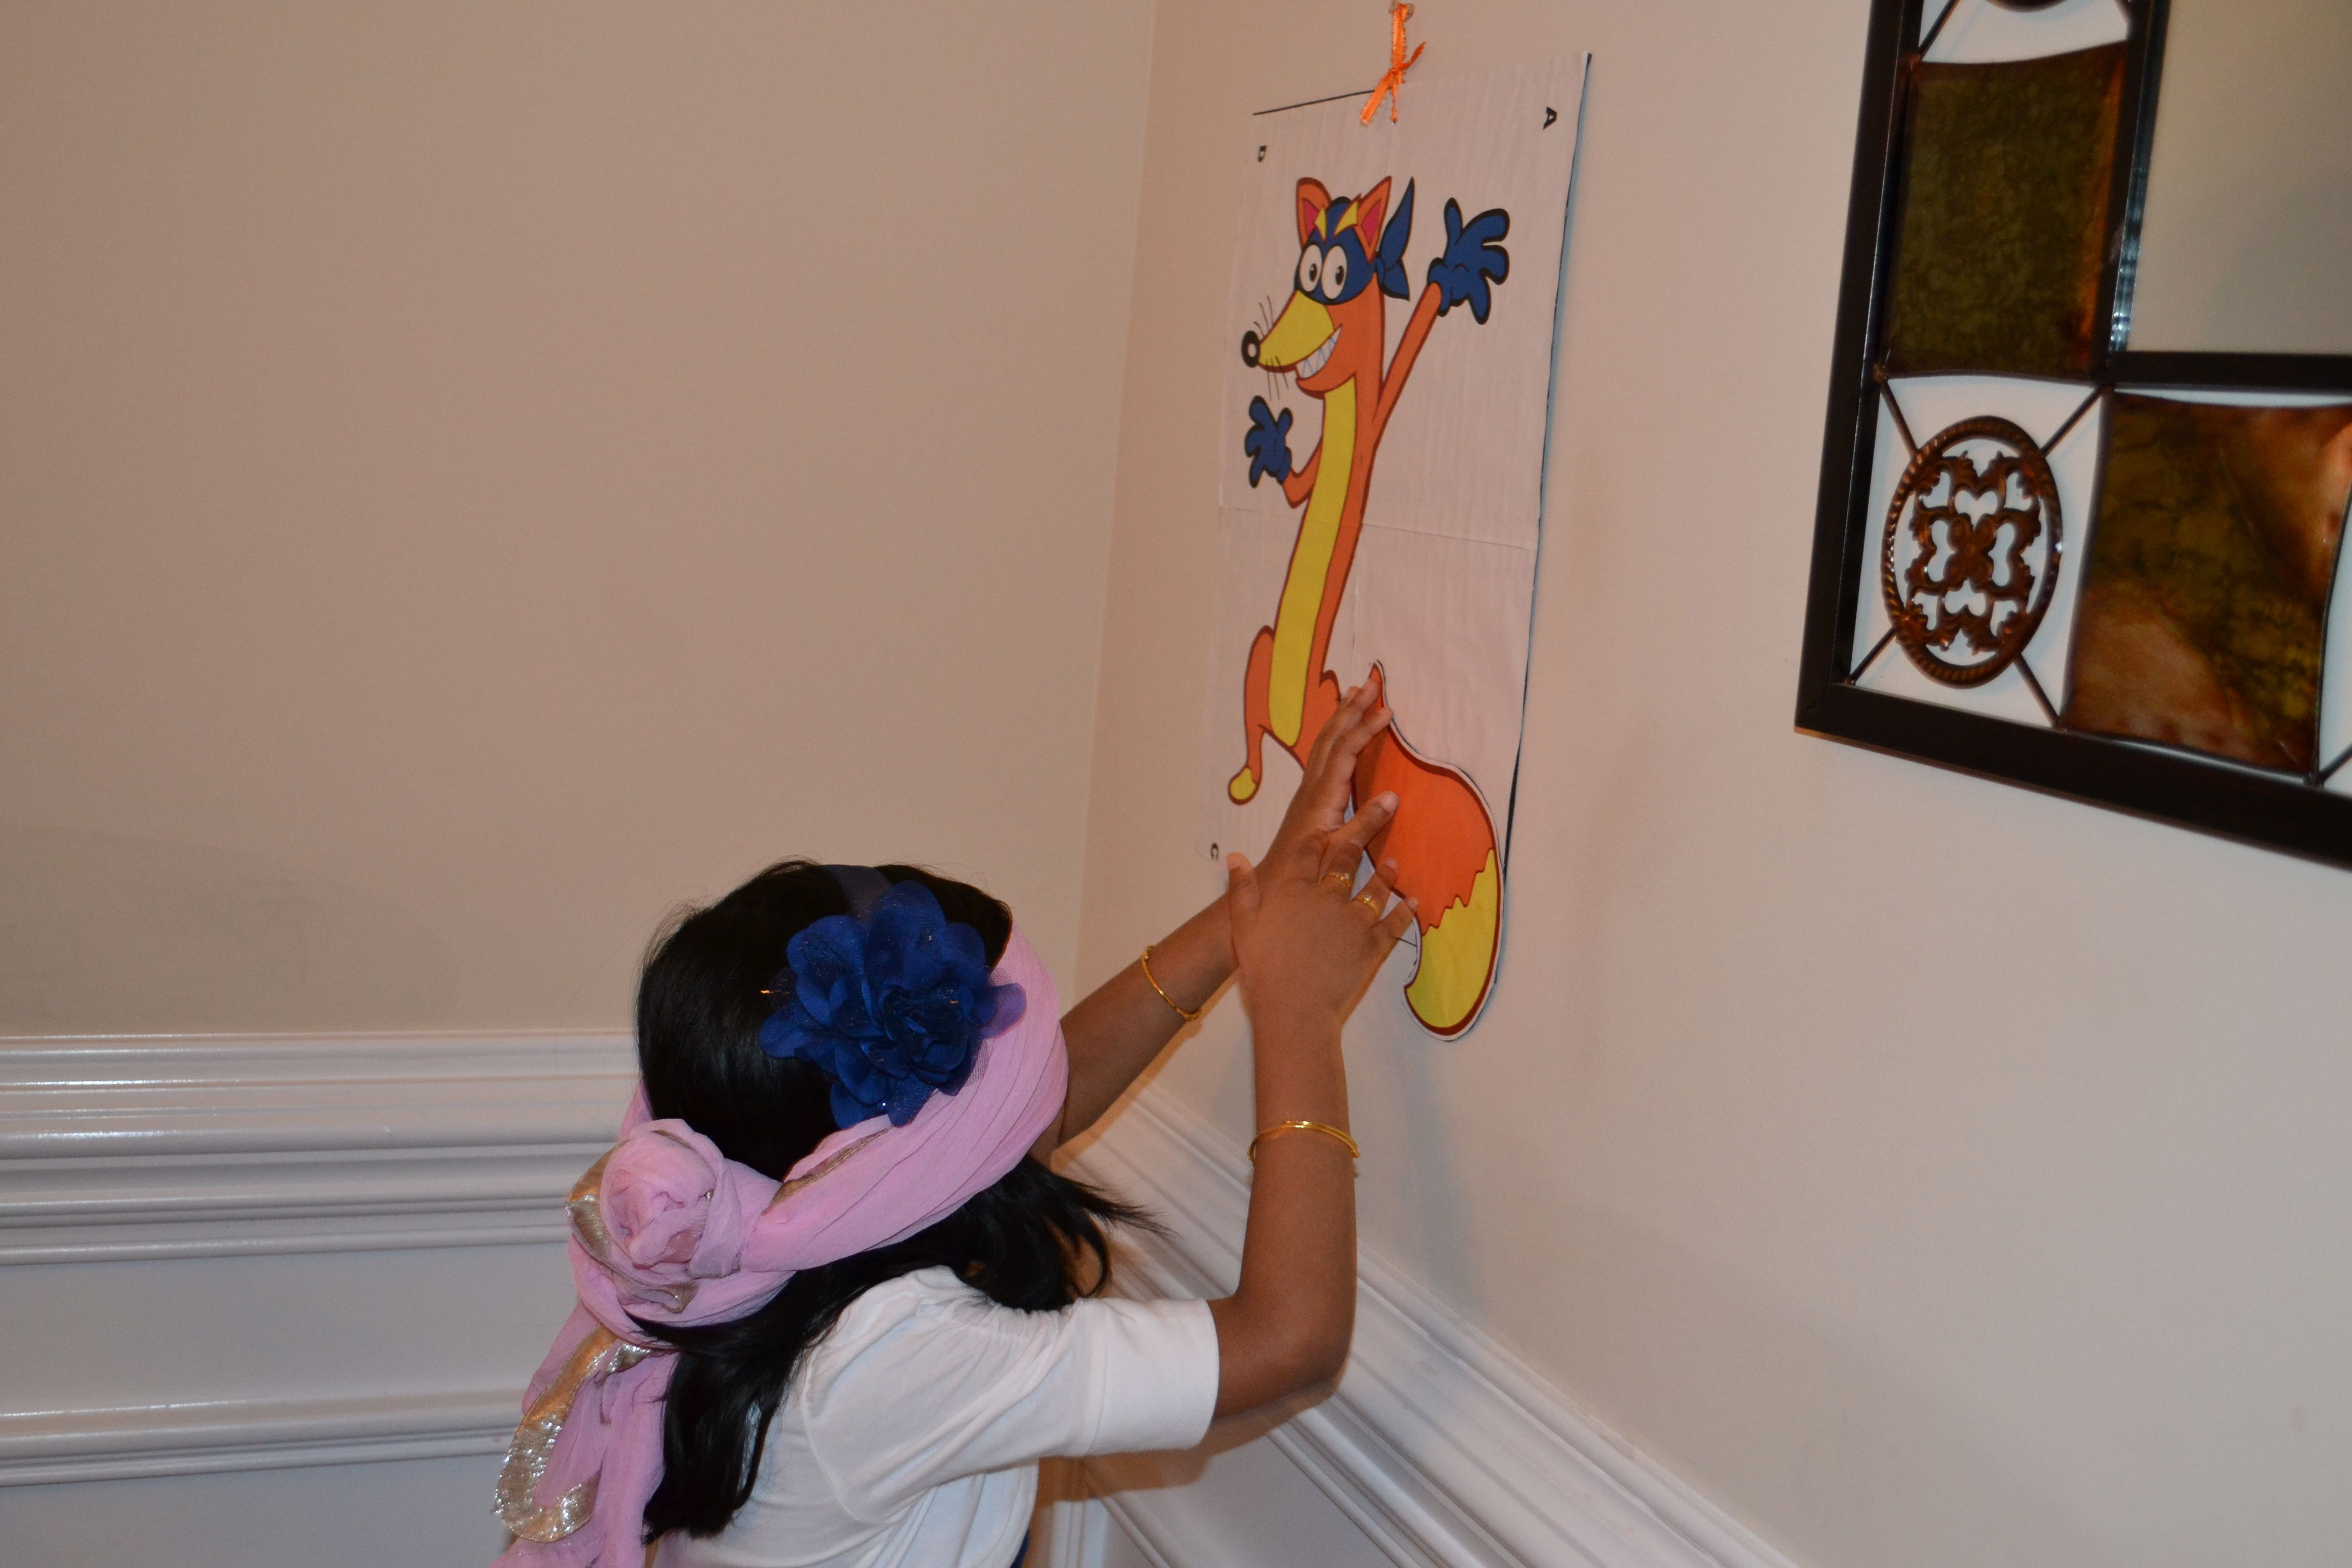 Pin the tail on swiperjust followed the instructions from nickjr